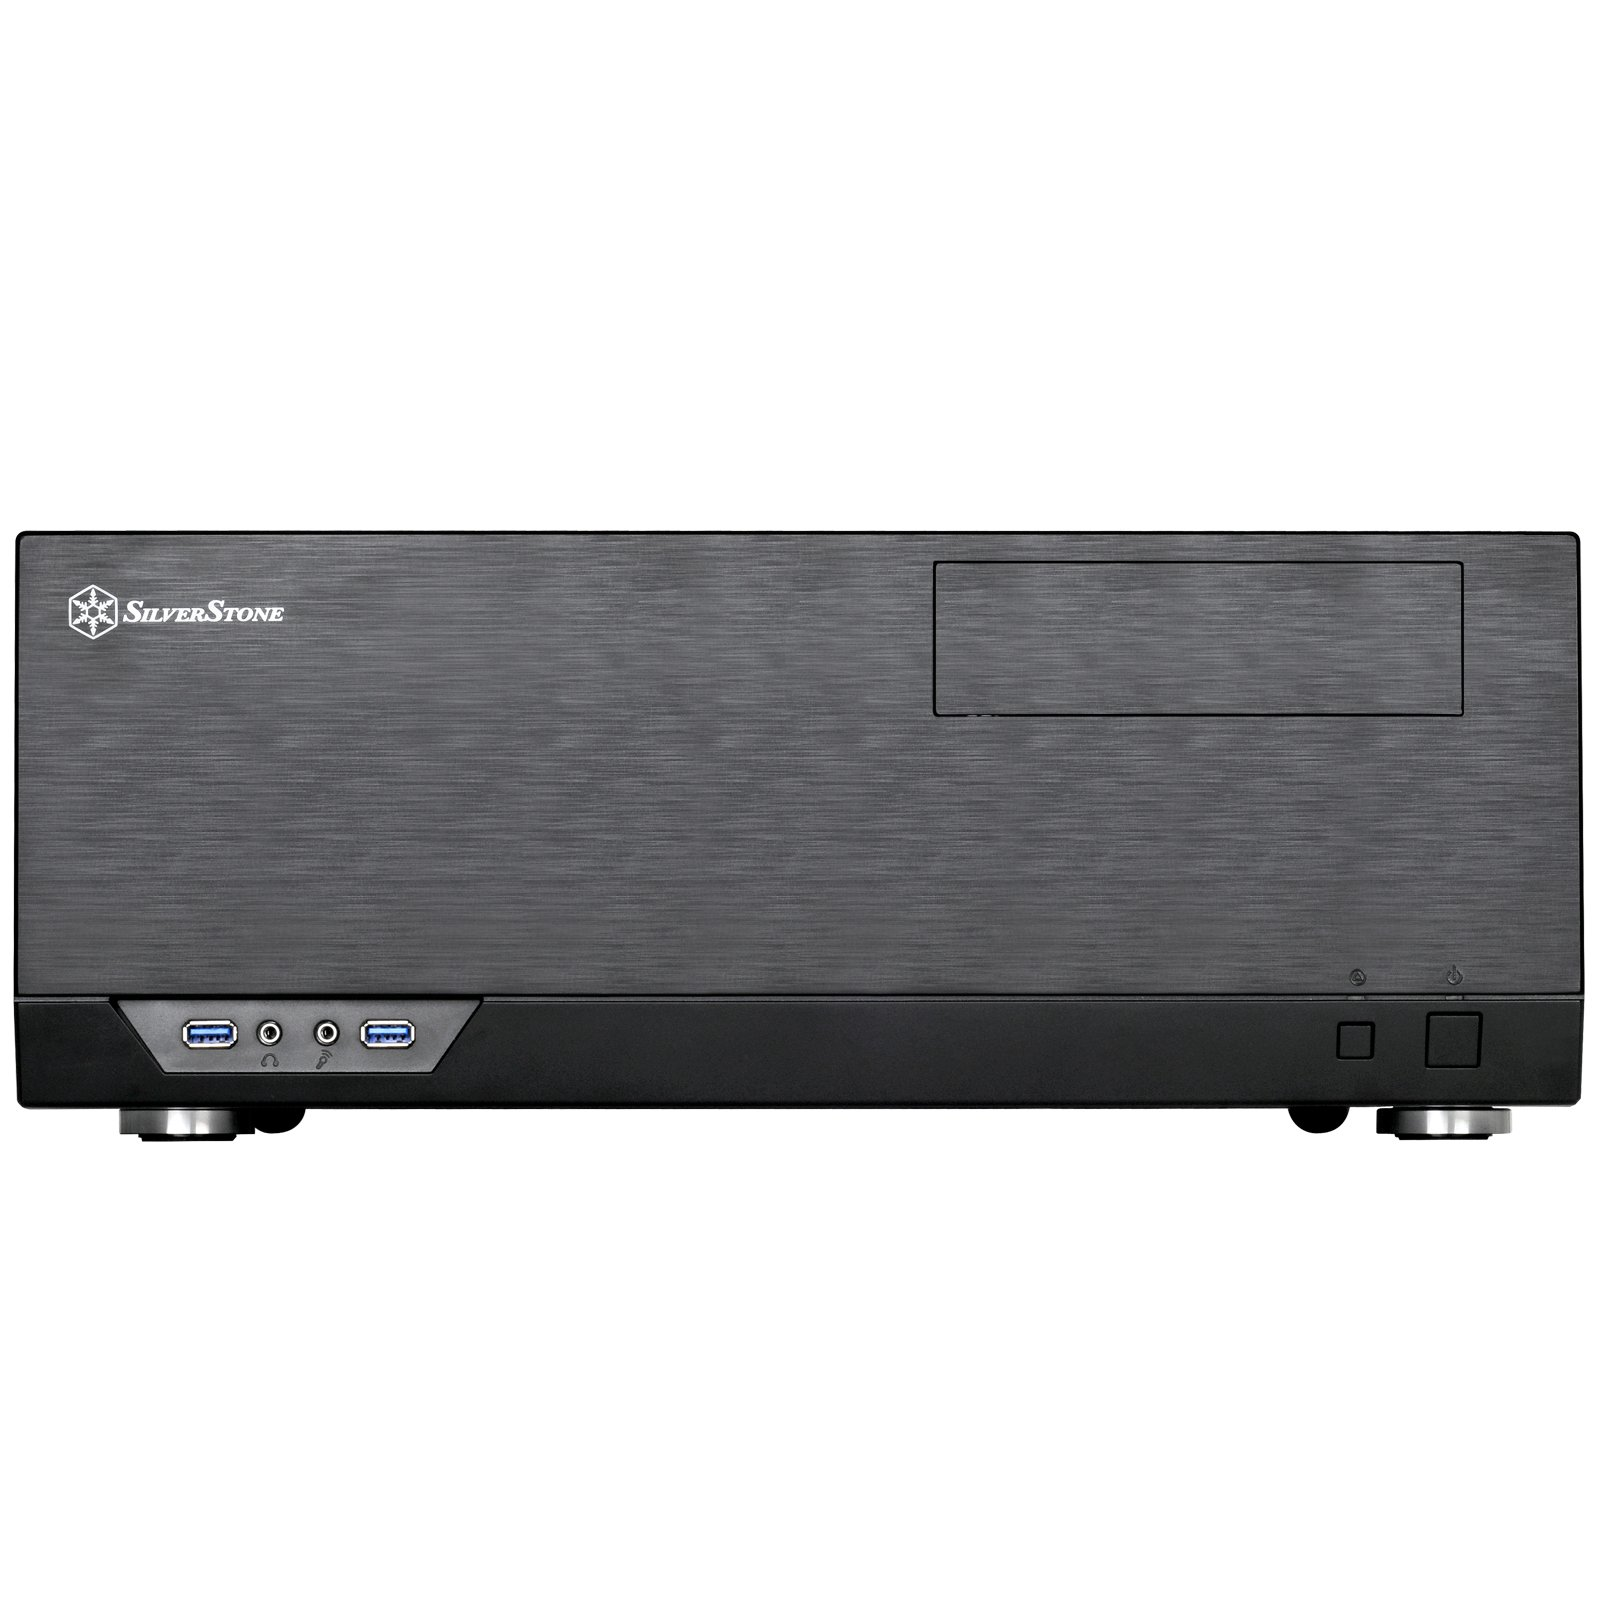 SilverStone Technology Home Theater Computer Case (HTPC) with Faux Aluminum Design for ATX/Micro-ATX Motherboards GD09B by SilverStone Technology (Image #3)